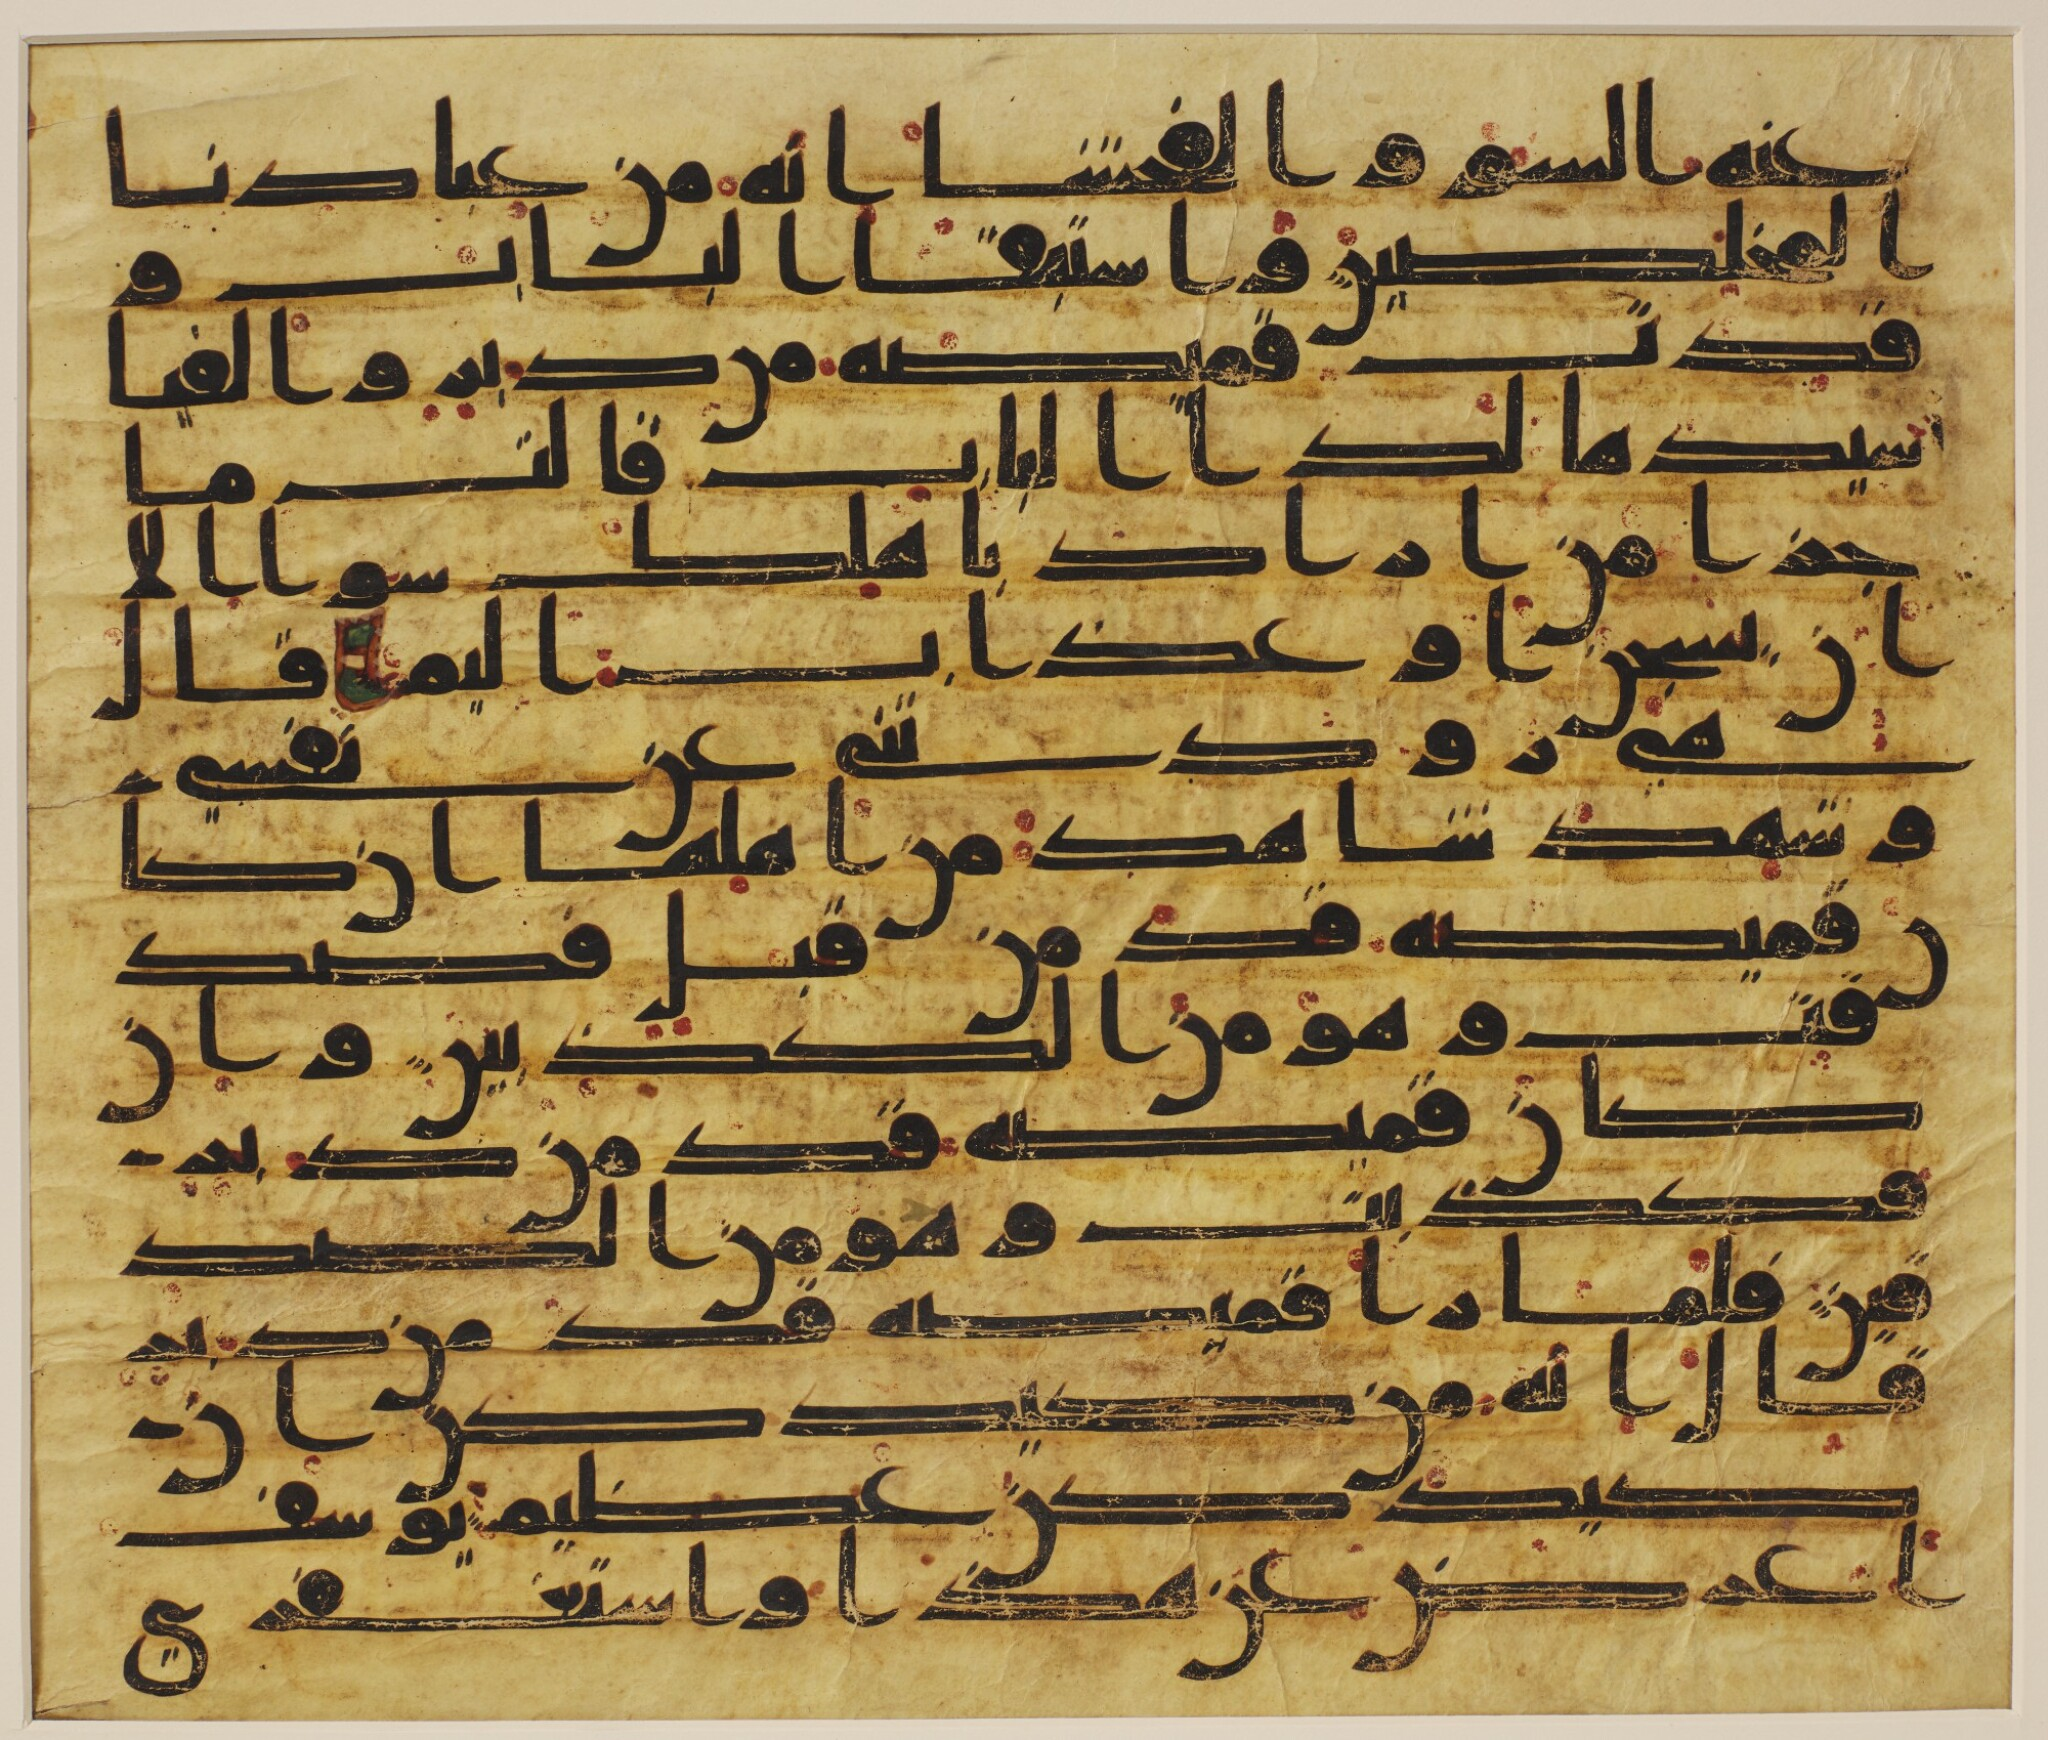 View full screen - View 1 of Lot 1. A LARGE QUR'AN LEAF IN KUFIC SCRIPT ON VELLUM, NORTH AFRICA OR NEAR EAST, CIRCA 750-800 AD.